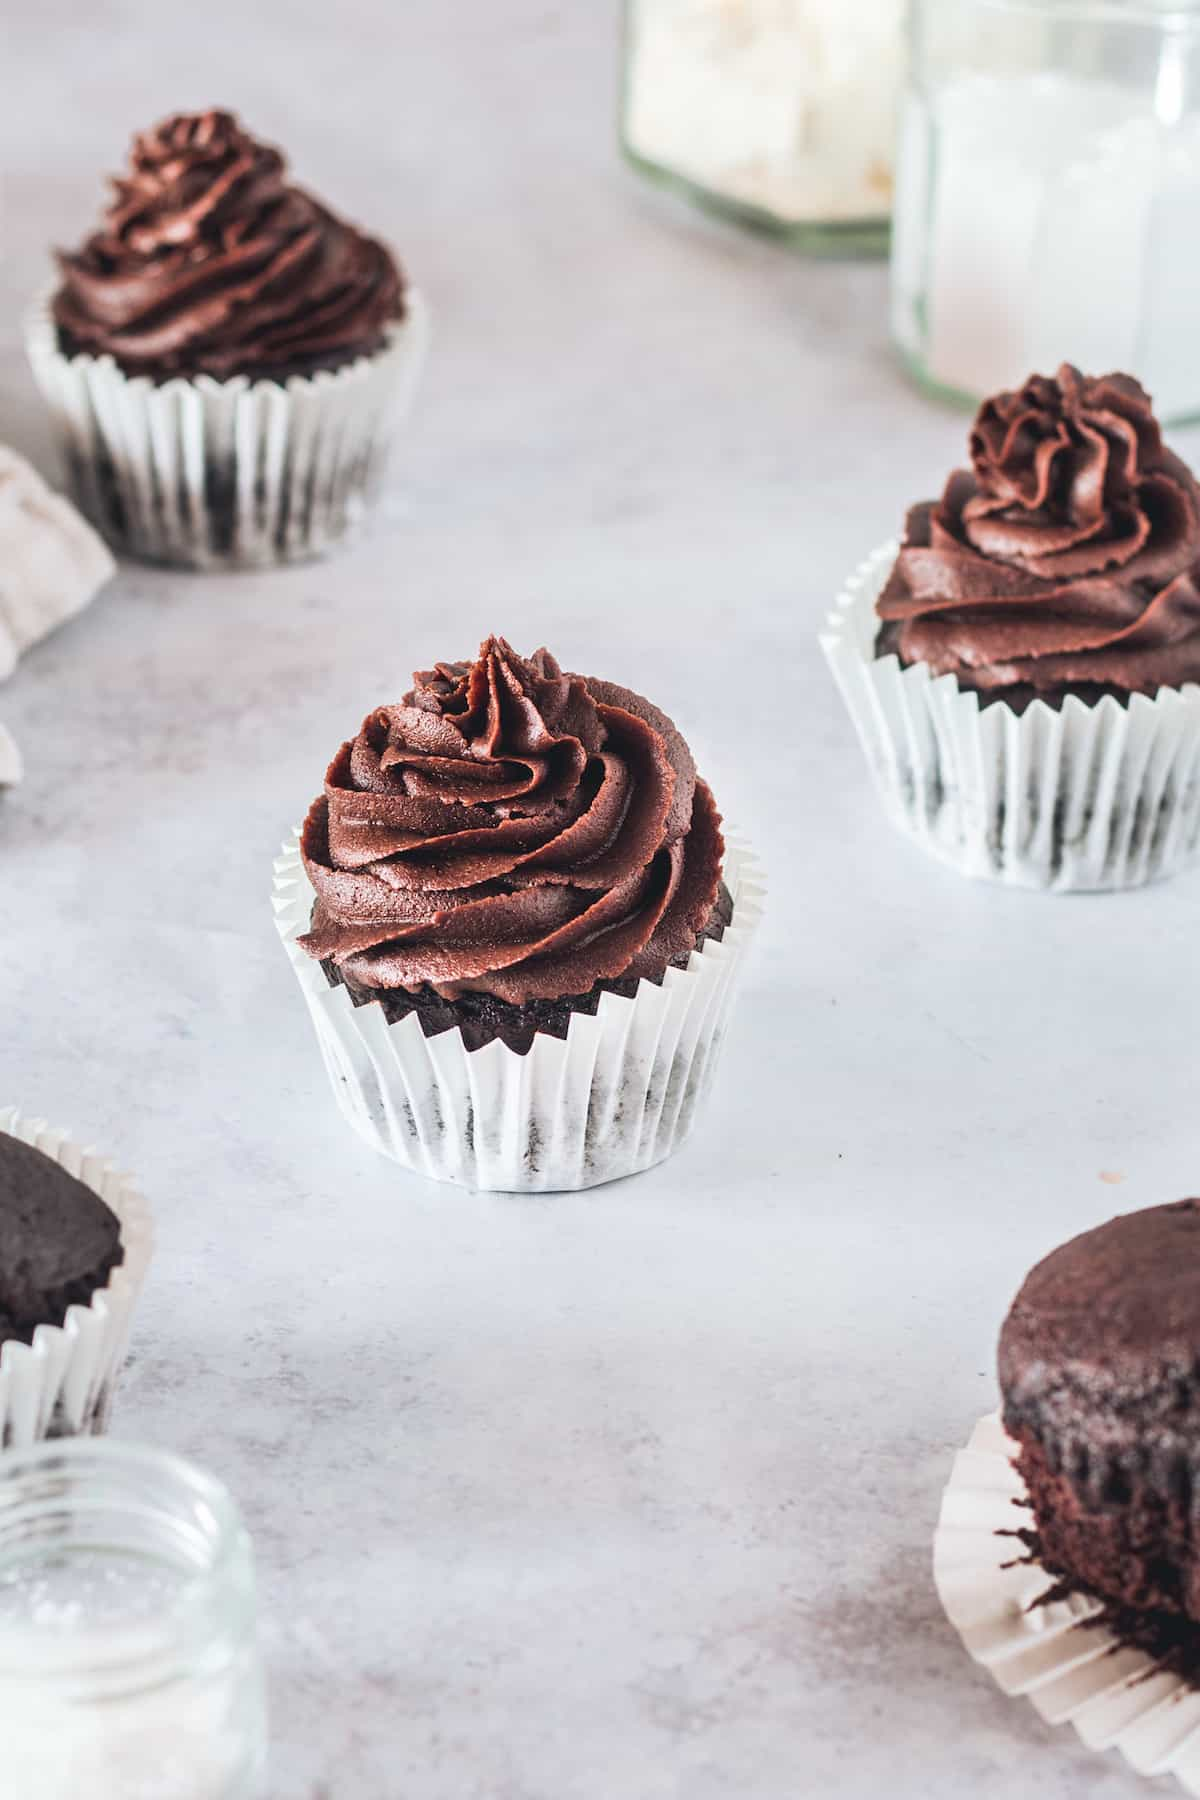 Frosted Chocolate Cupcakes on a Counter with Jars of Salt, Sugar and Gluten-Free Flour